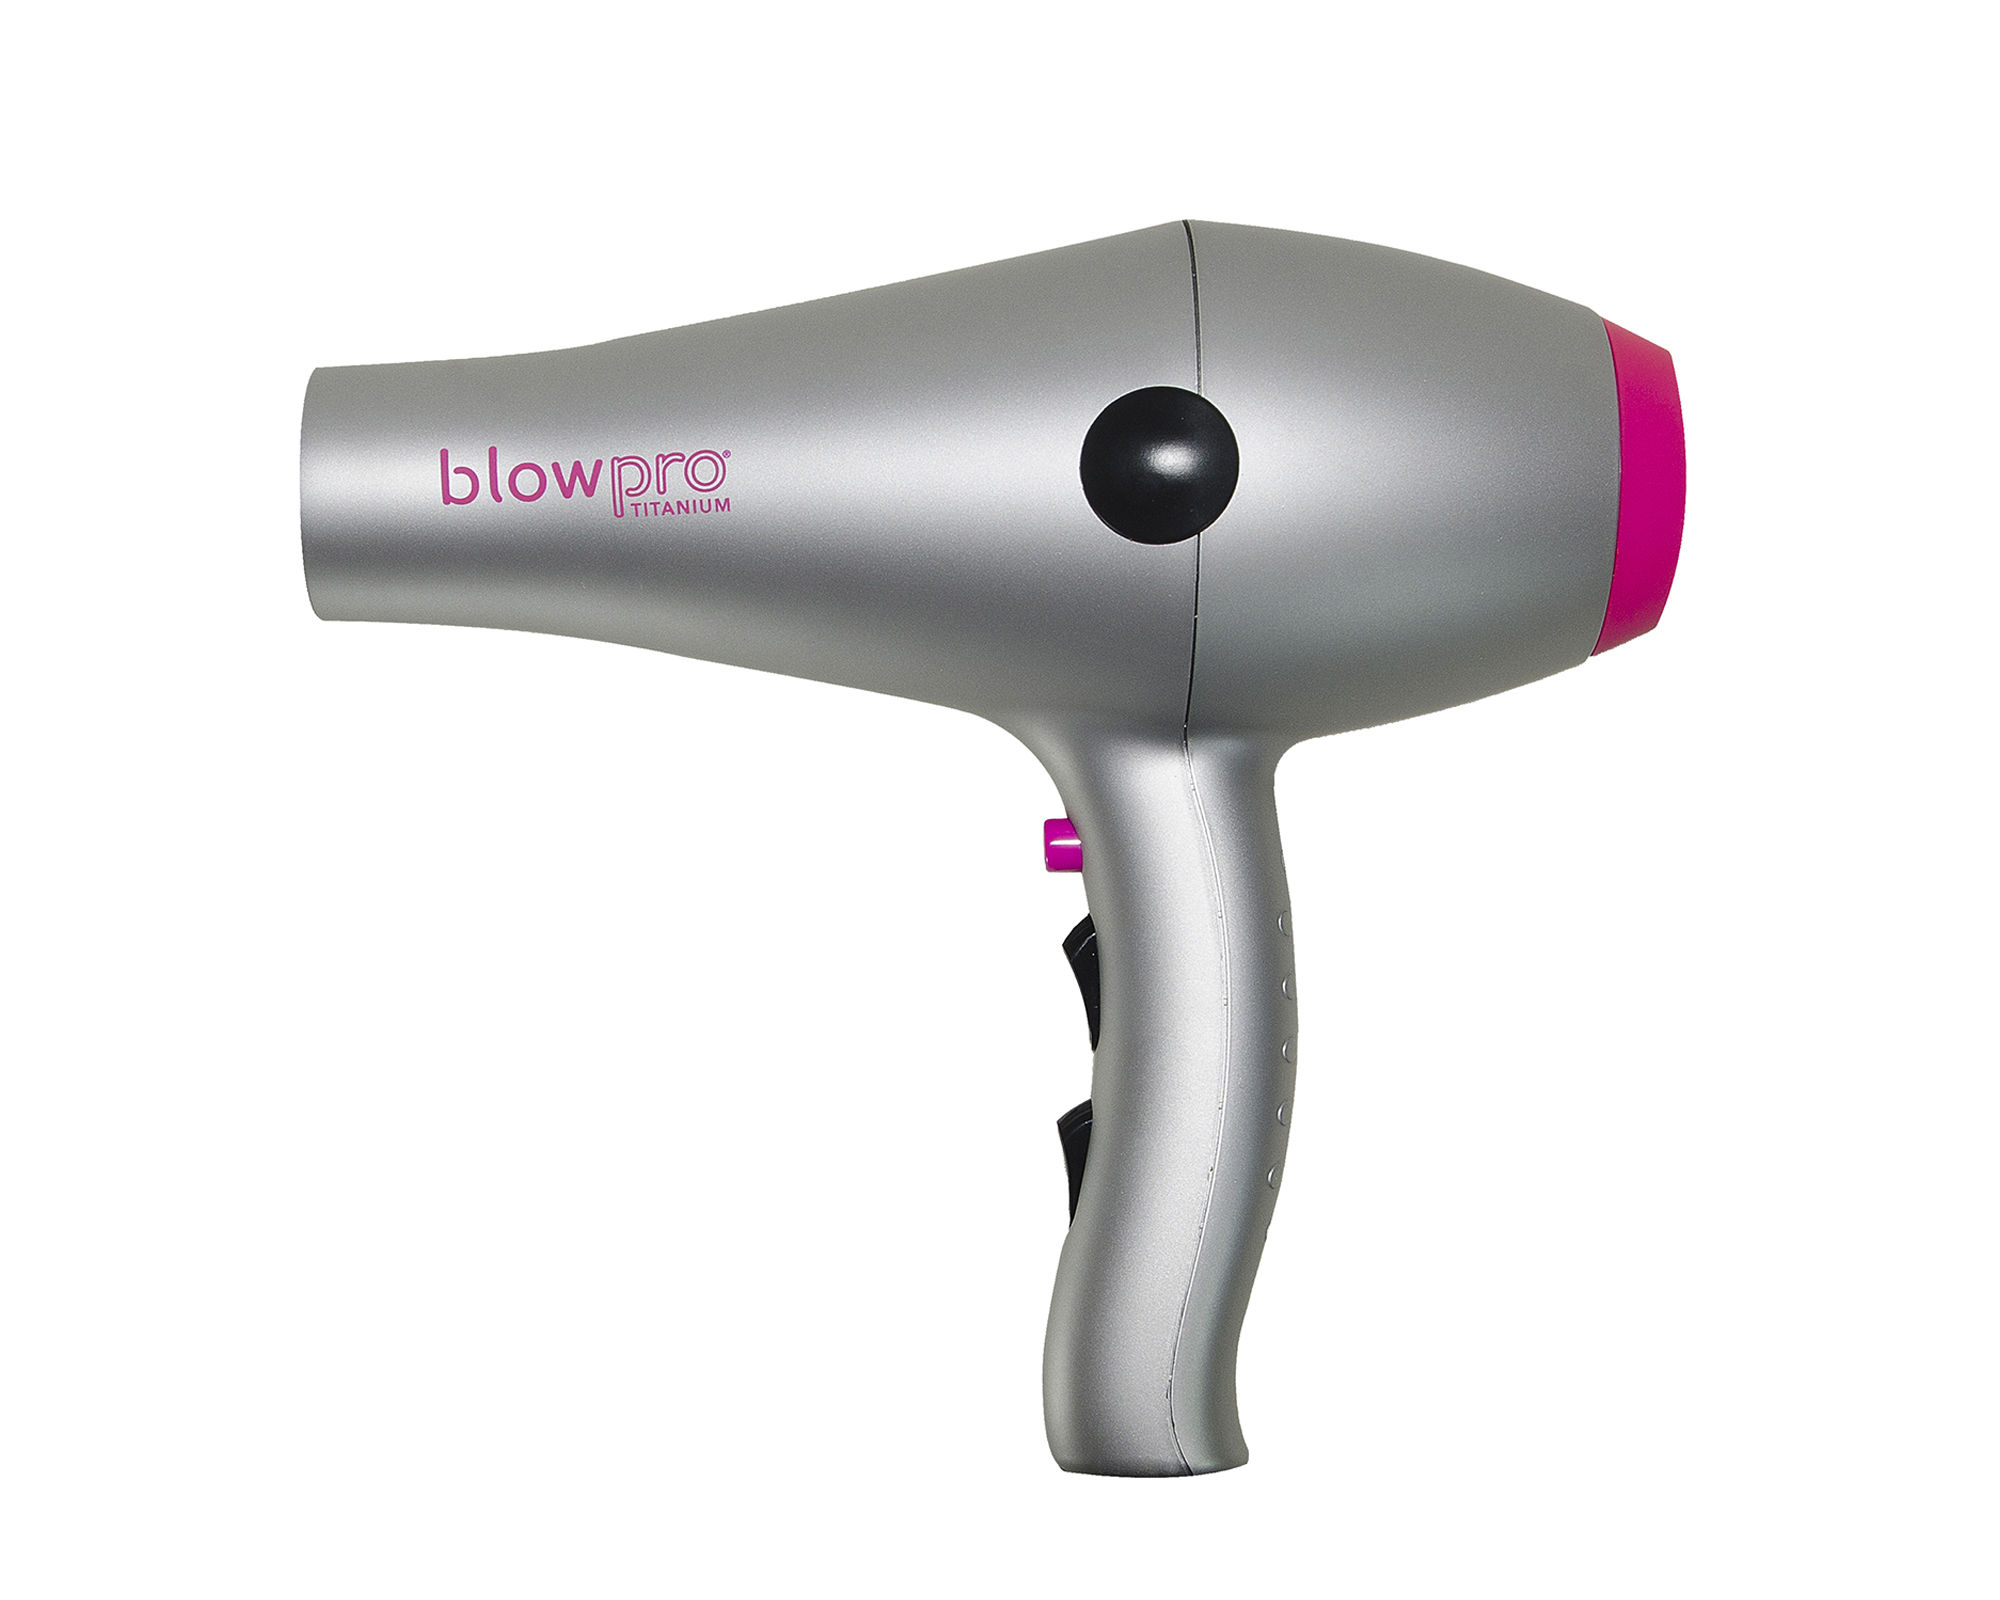 blowpro Titanium Professional Hair Dryer + 3-pc. Travel-Sized Products